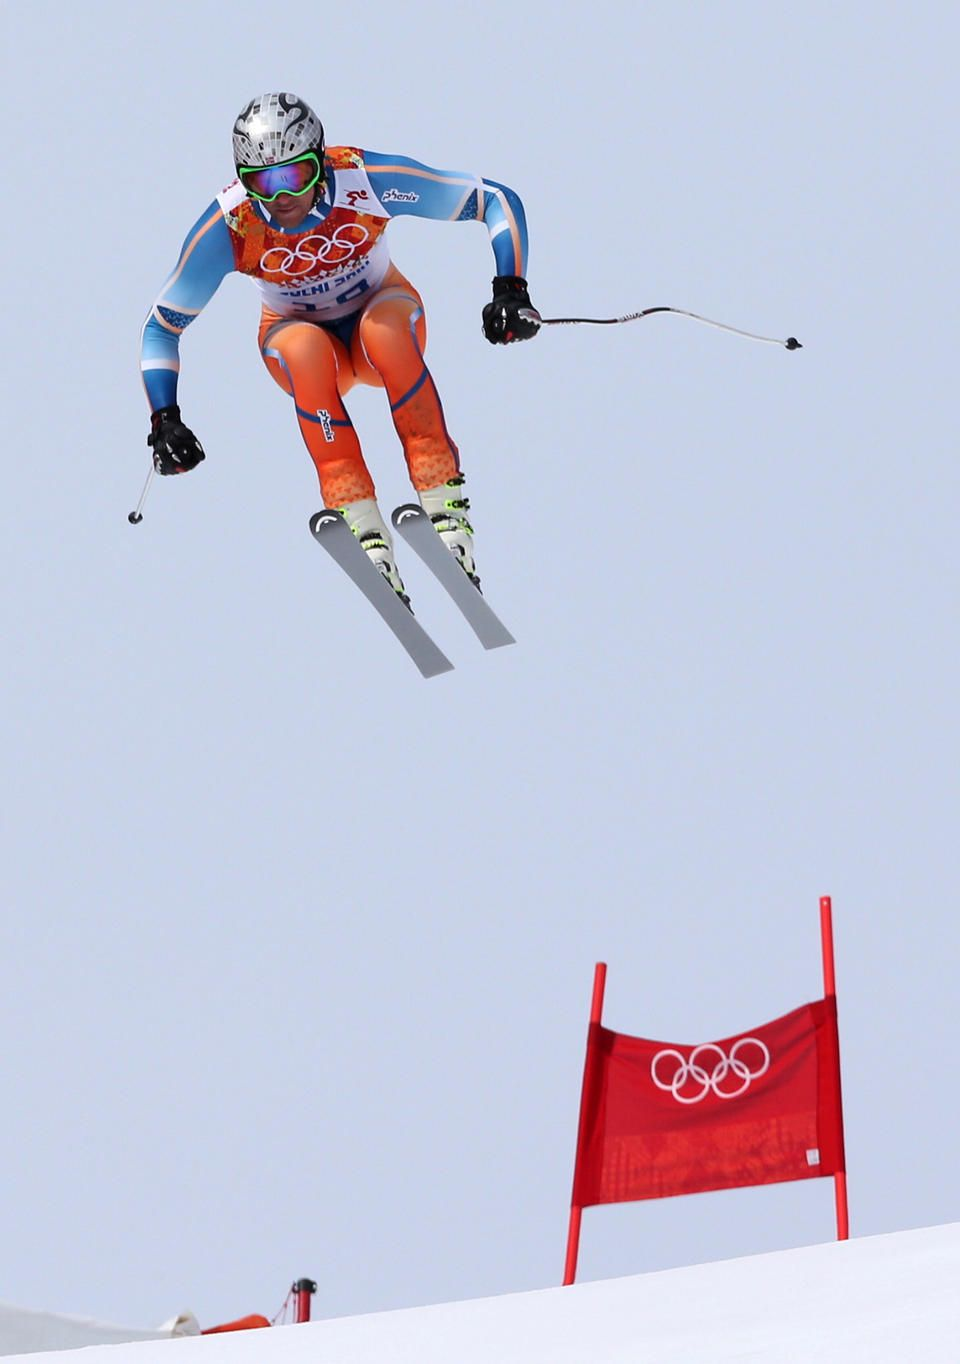 Mayer beats Miller, Svindal in Olympic downhill Winter